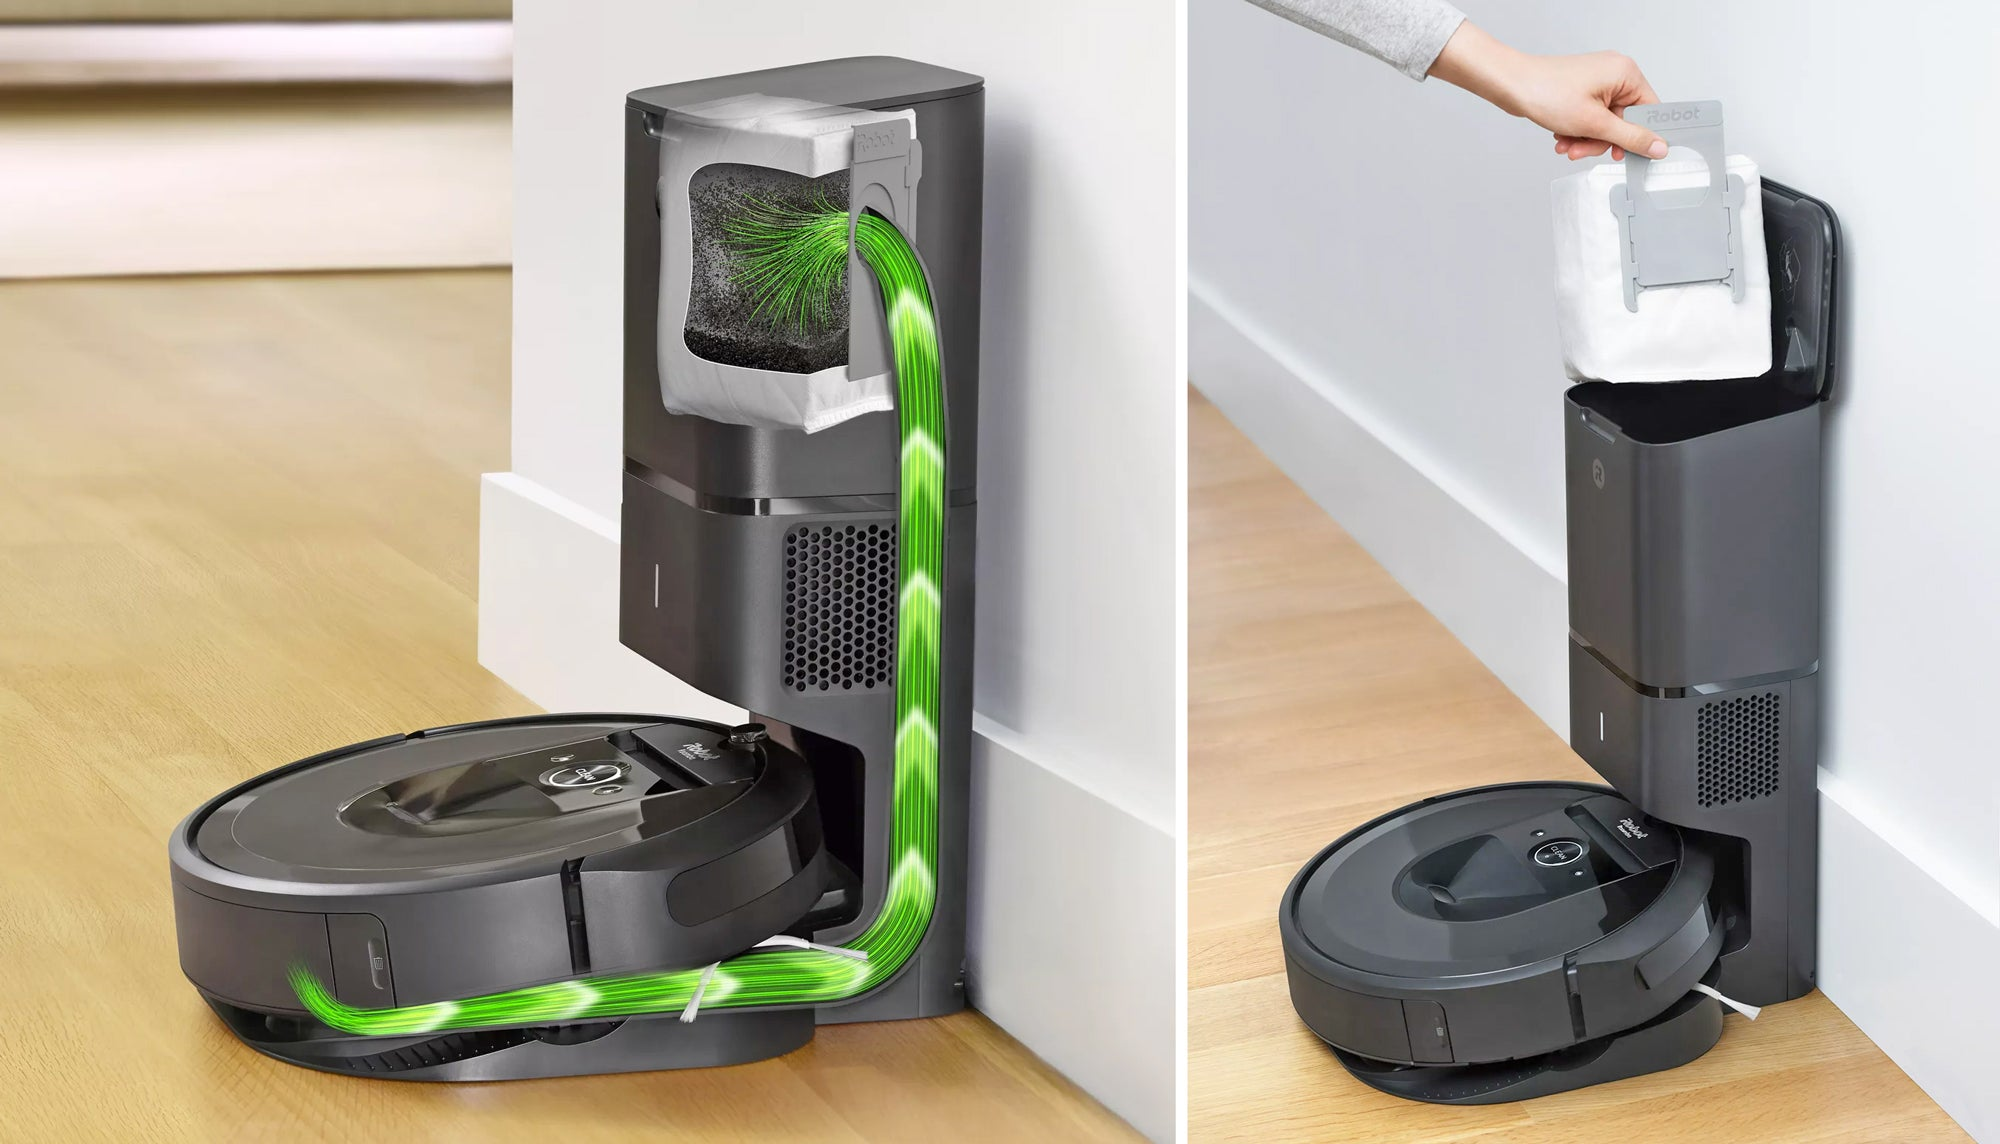 iRobot Finally Makes A Roomba That Empties Itself